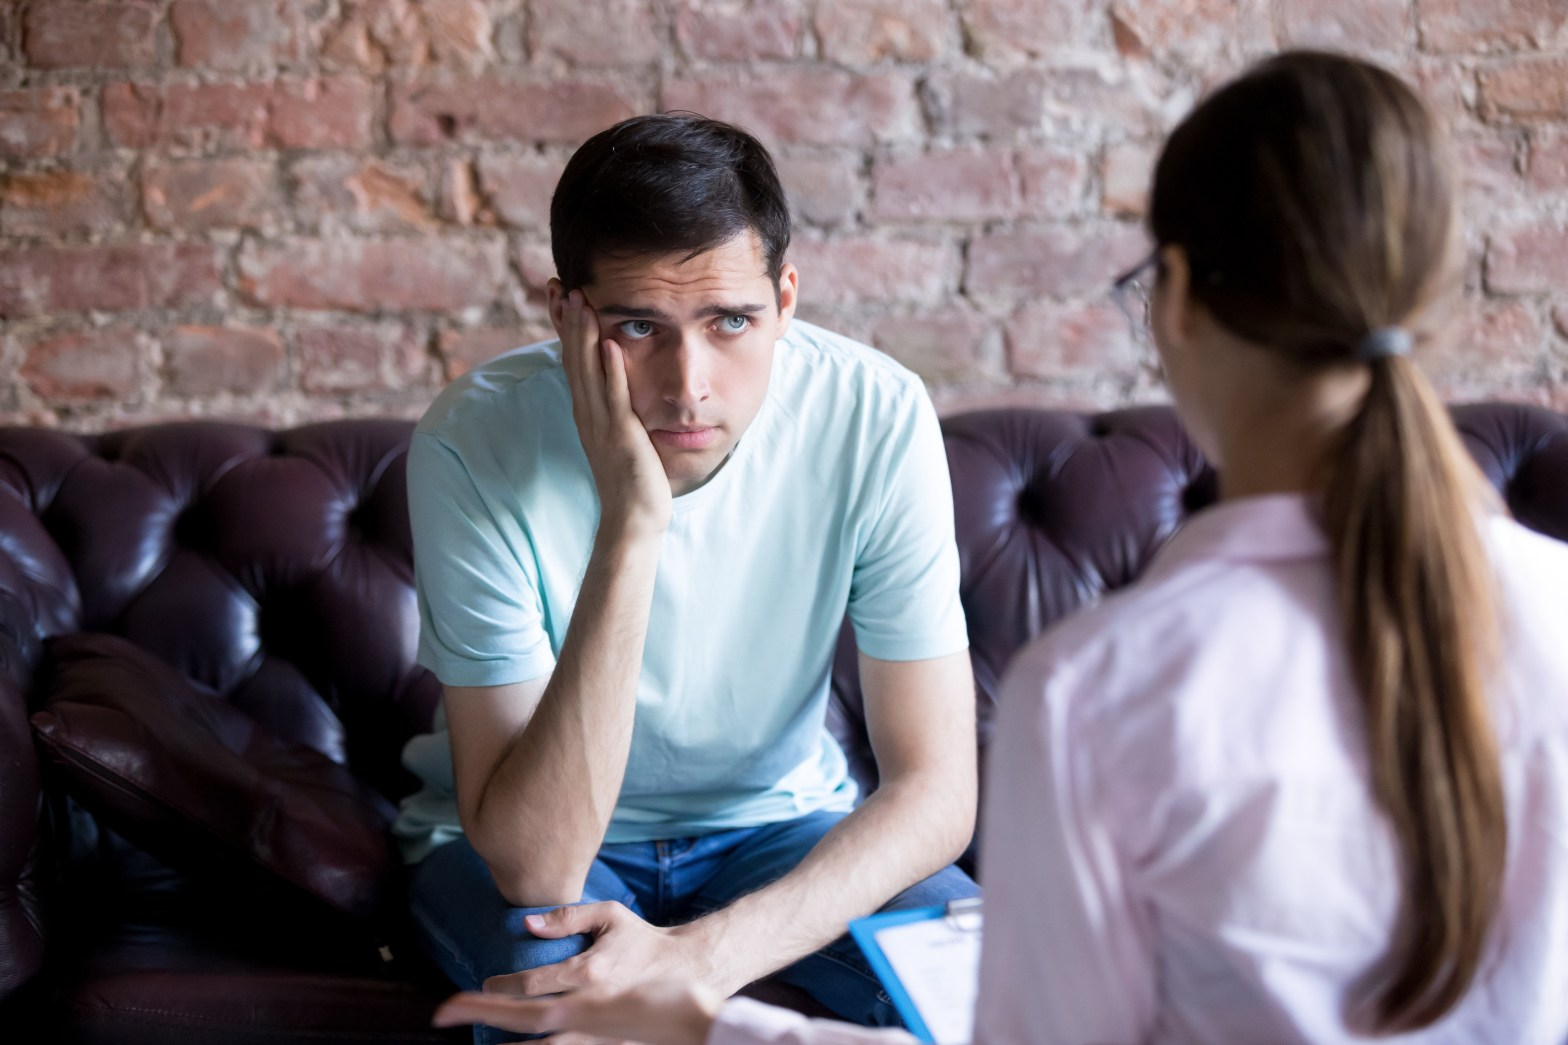 Unhappy male coachee listening to an executive coach give advice. Frustrated client holding a hand to his face.